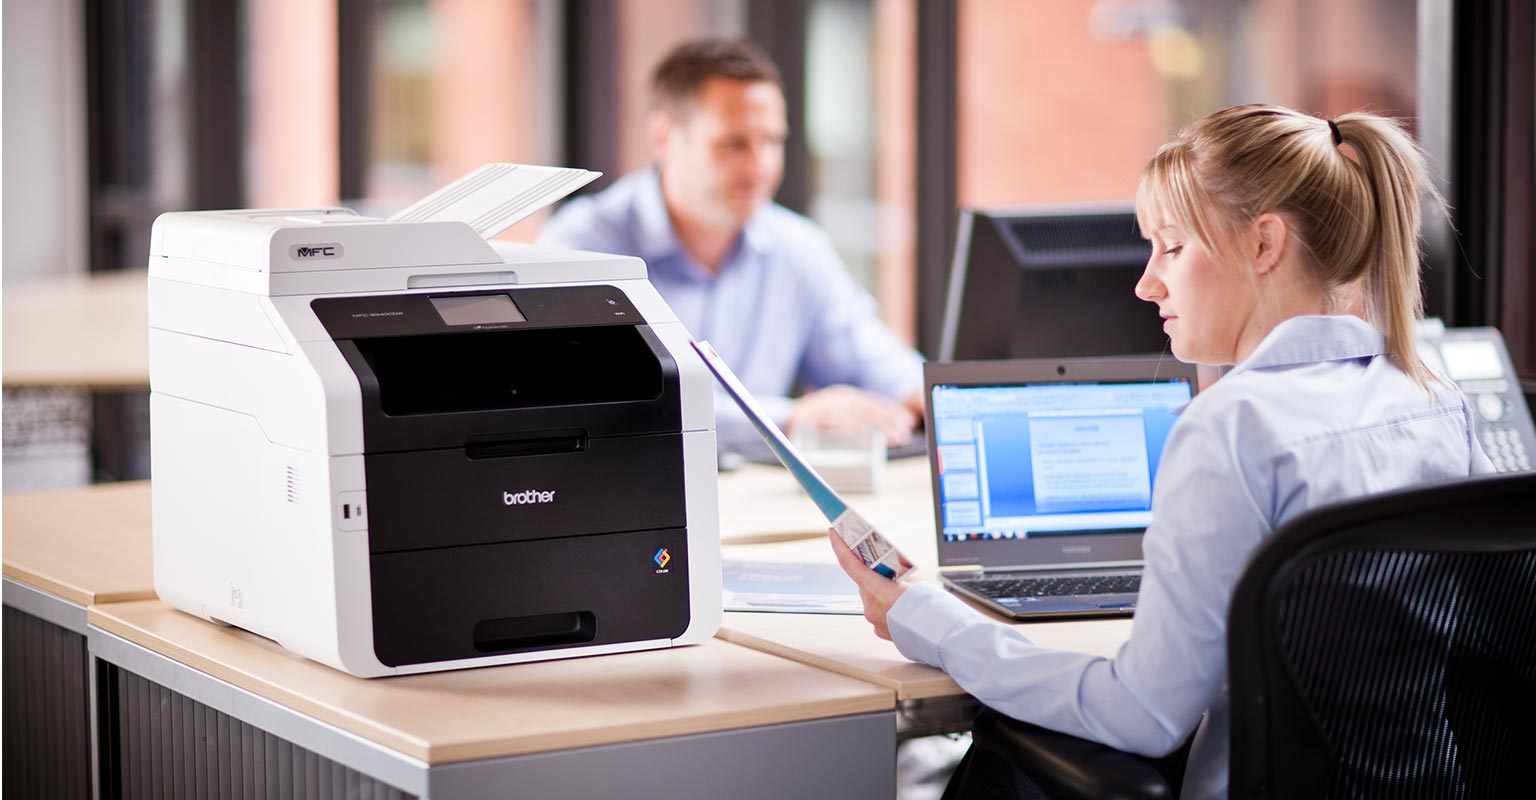 Why businesses should use managed print services (MPS)